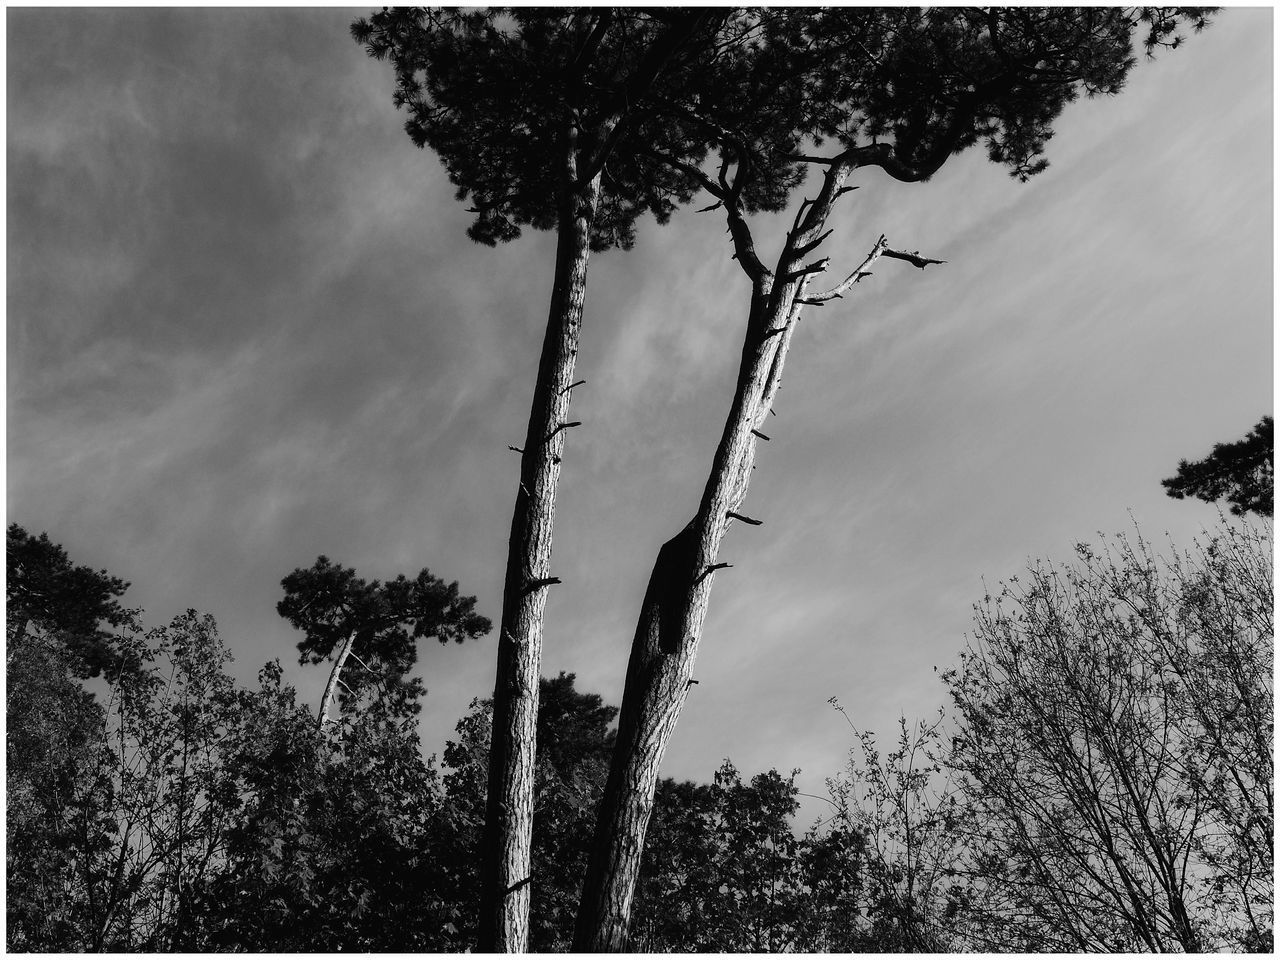 tree, plant, sky, growth, nature, tranquility, beauty in nature, no people, low angle view, cloud - sky, trunk, tree trunk, environment, outdoors, tranquil scene, transfer print, silhouette, branch, day, scenics - nature